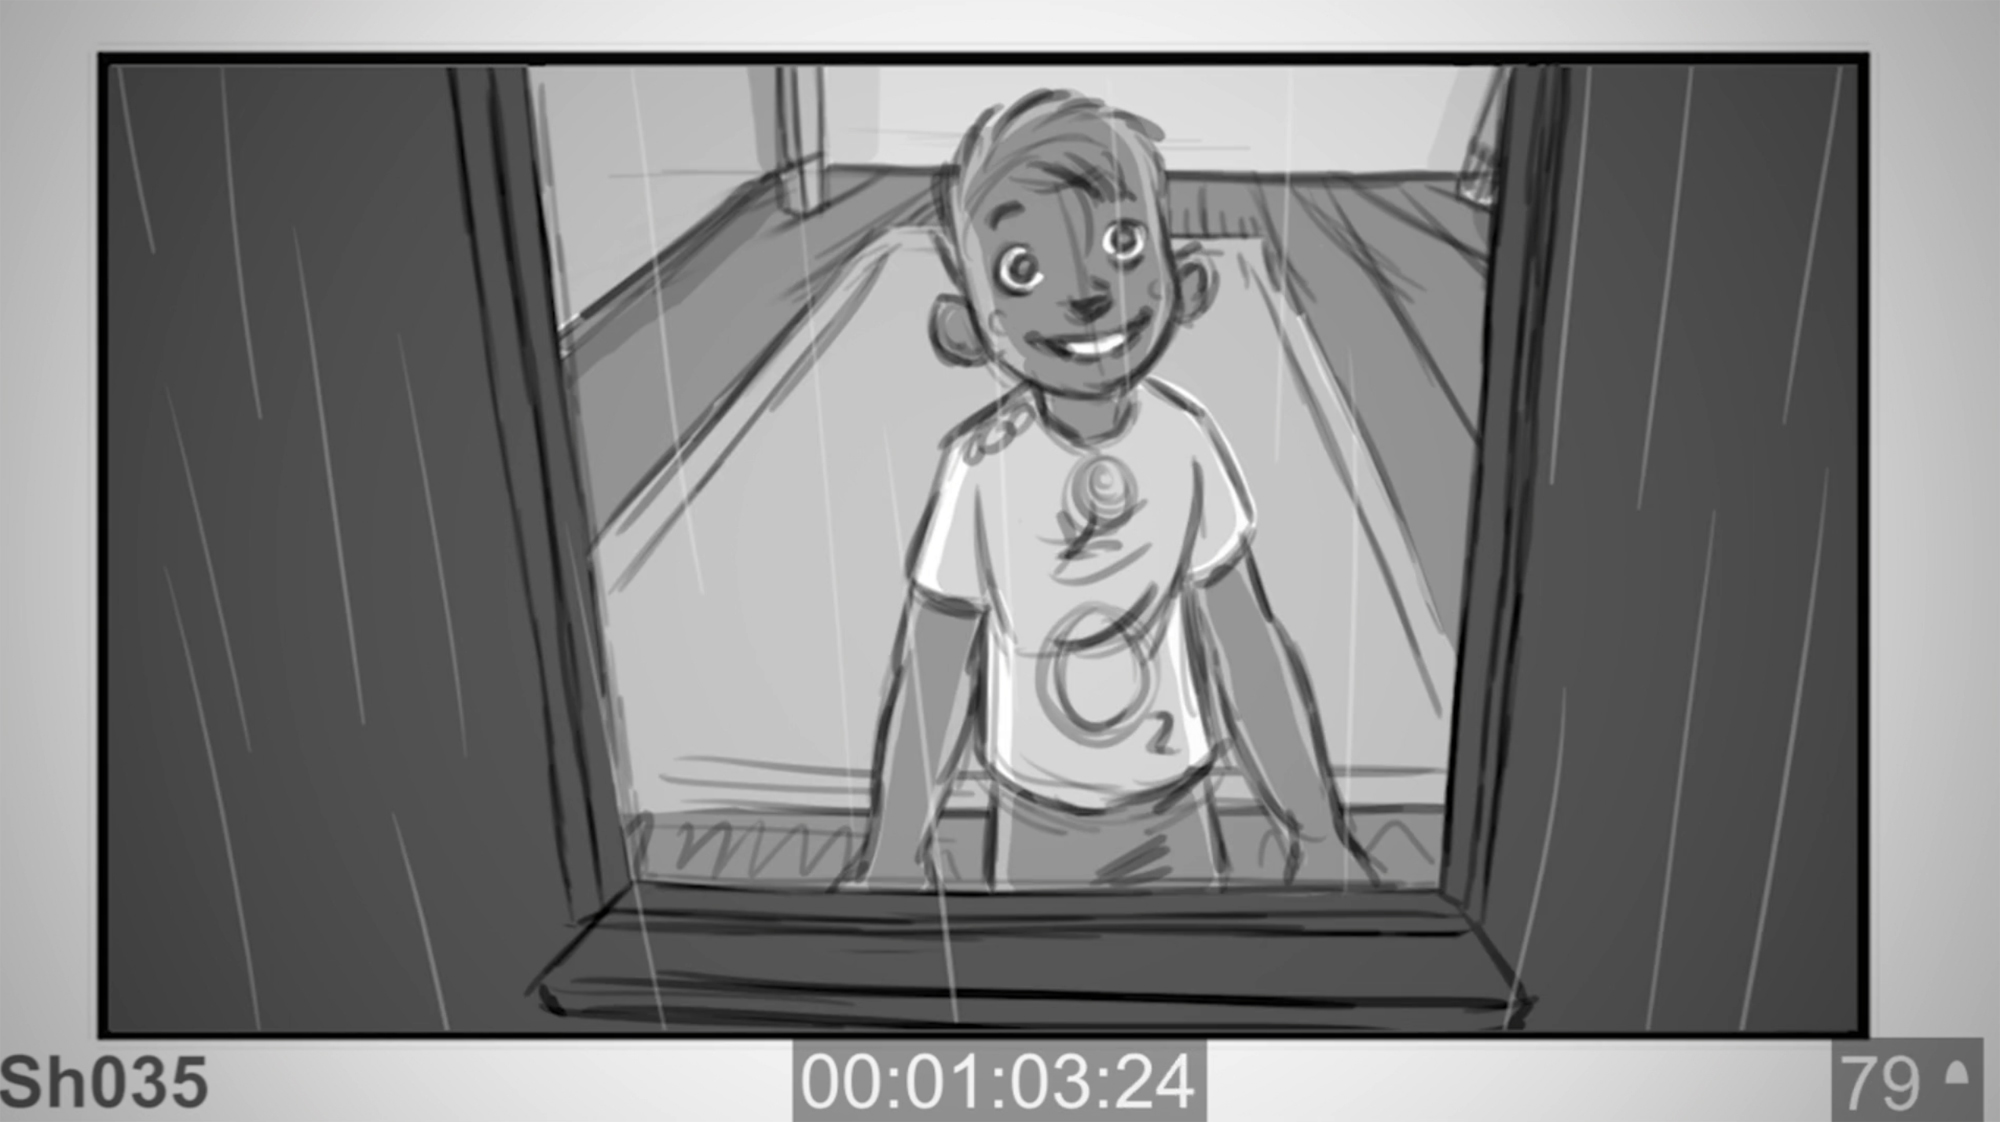 From the O2 animatic